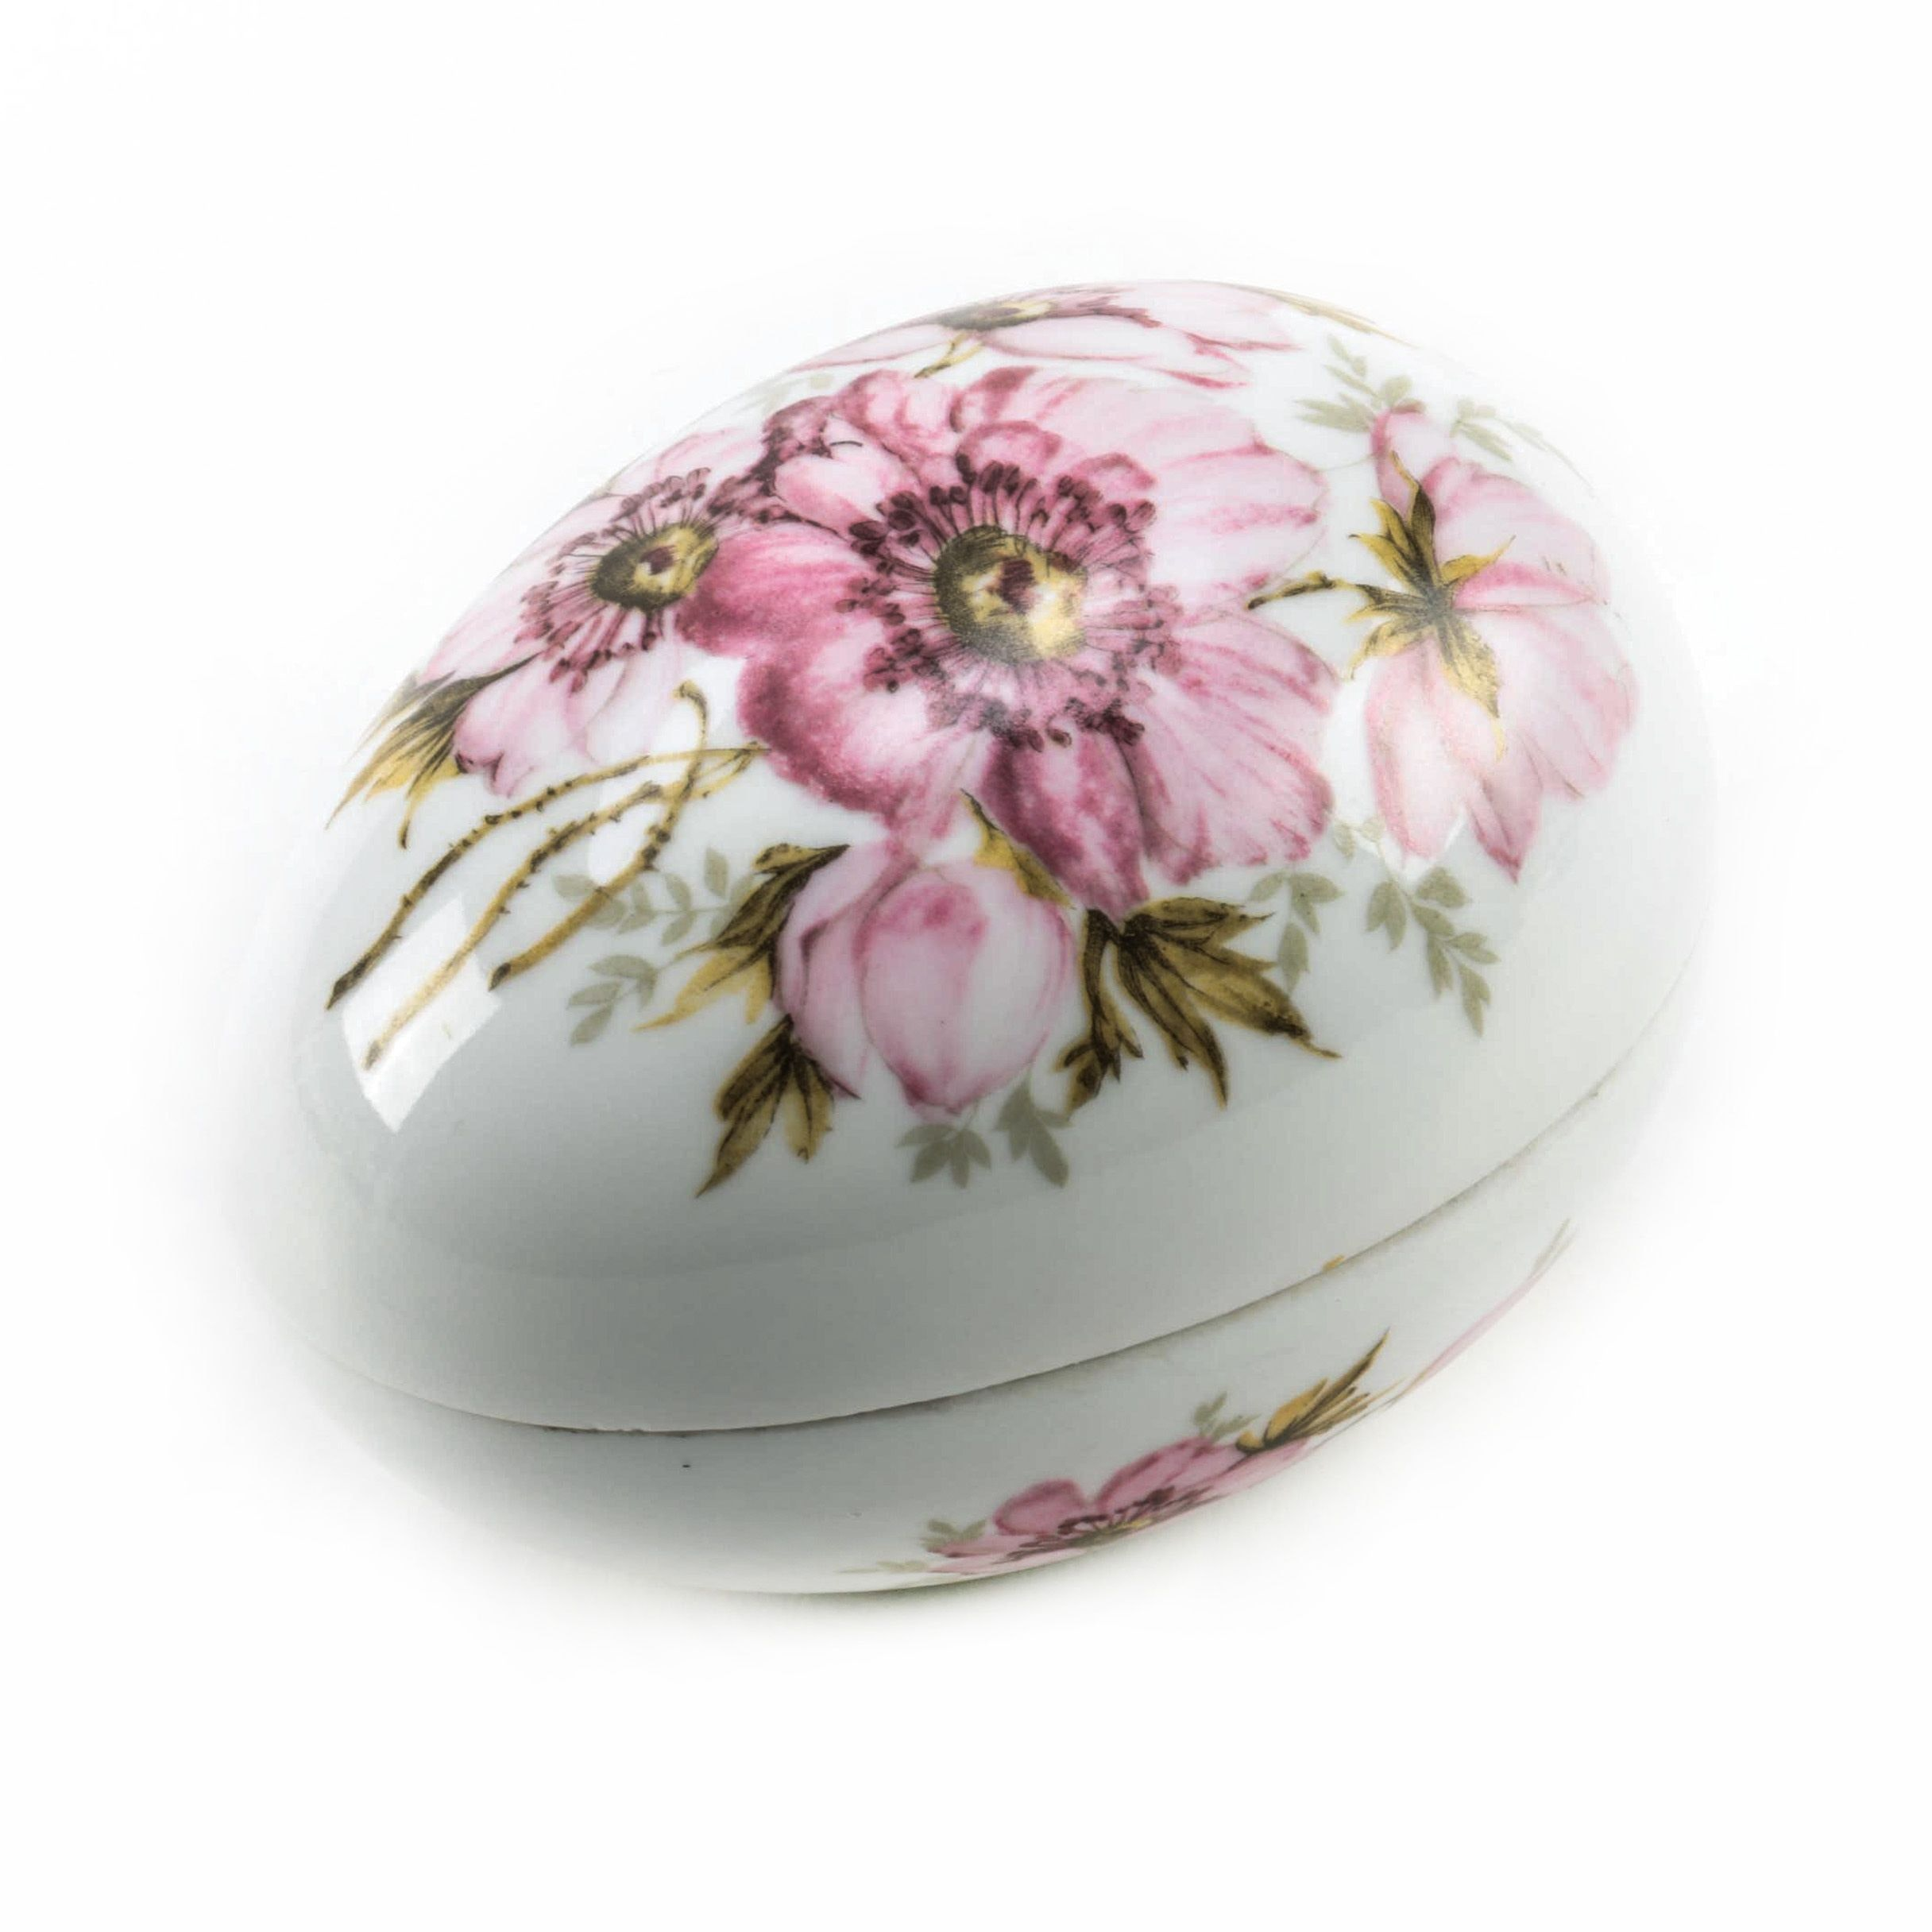 Limoges Porcelain Egg Trinket Box